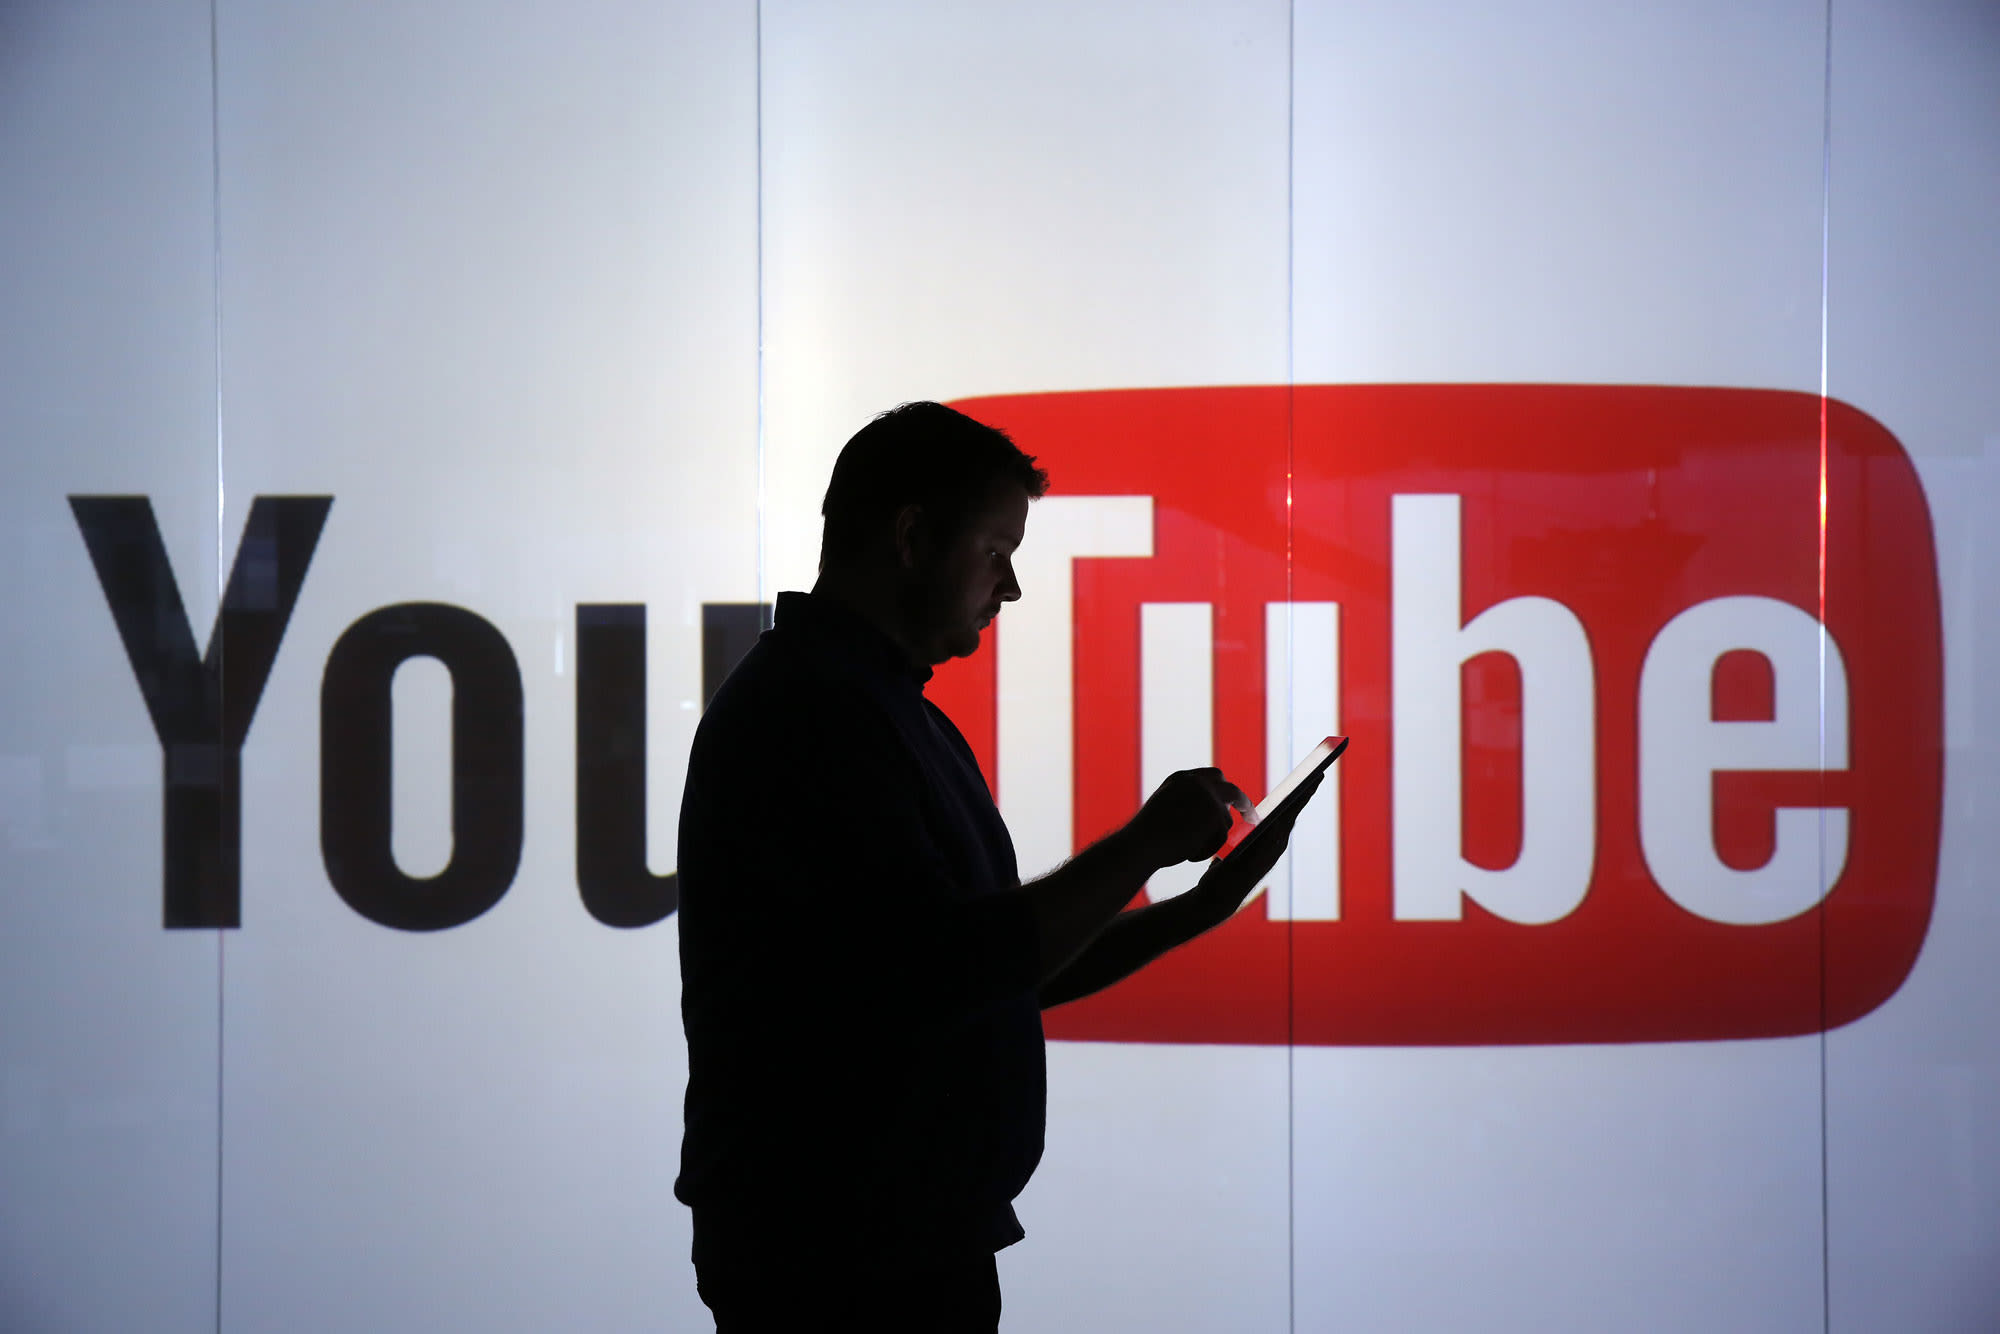 Utah Man Arrested for Threatening to Kill YouTube Employees